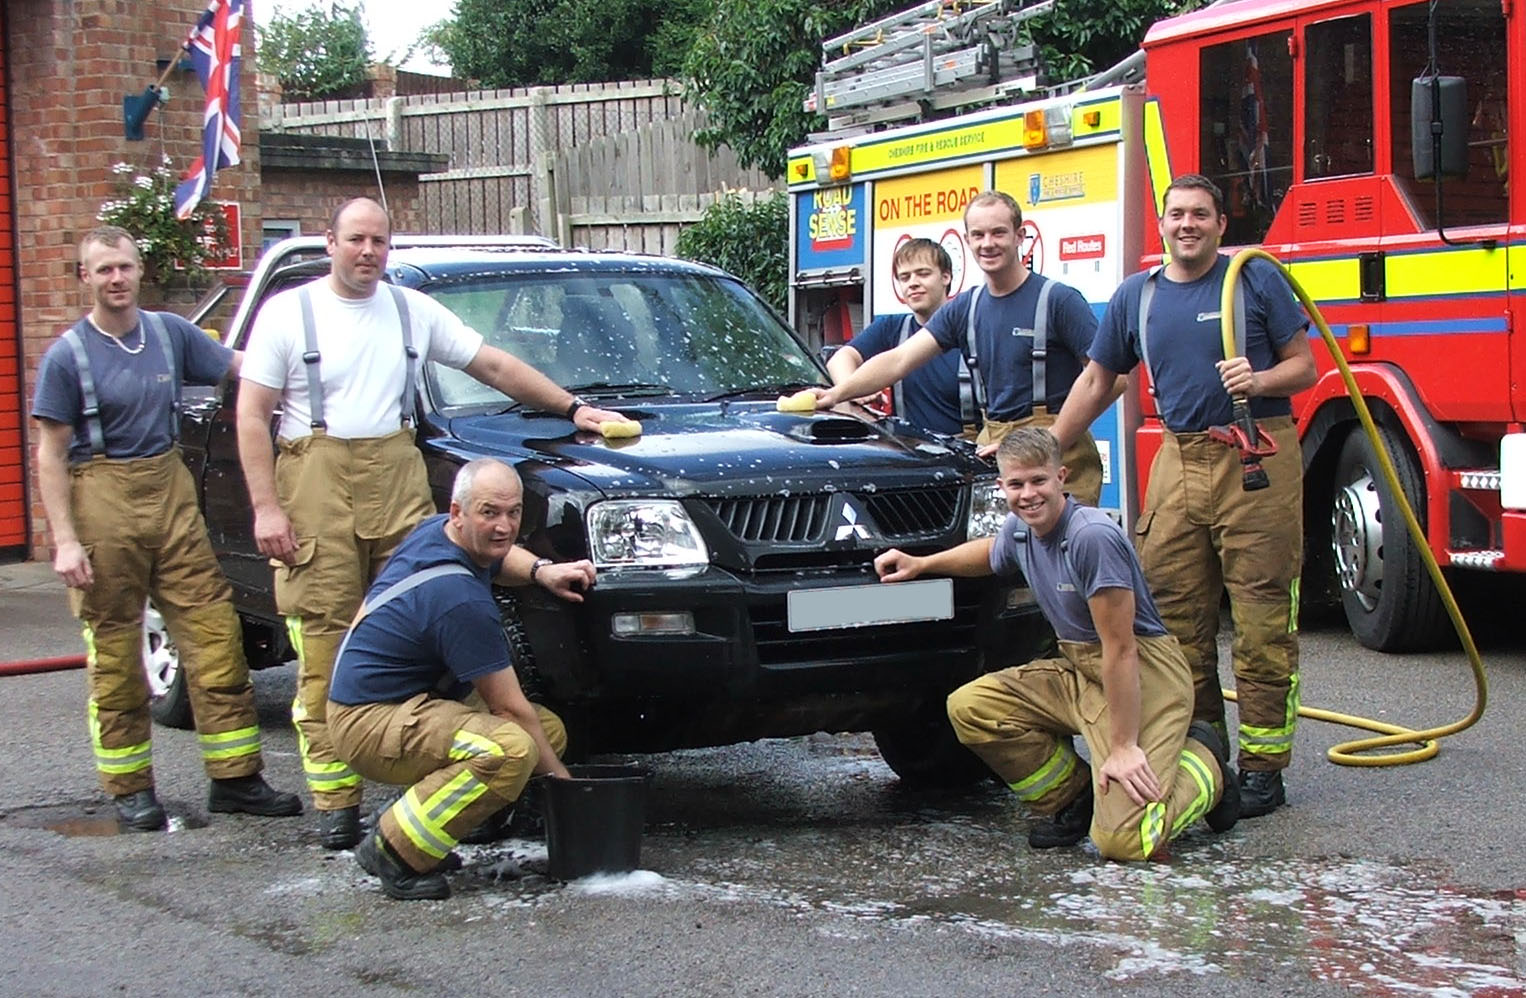 Firefighters Charity Car Wash